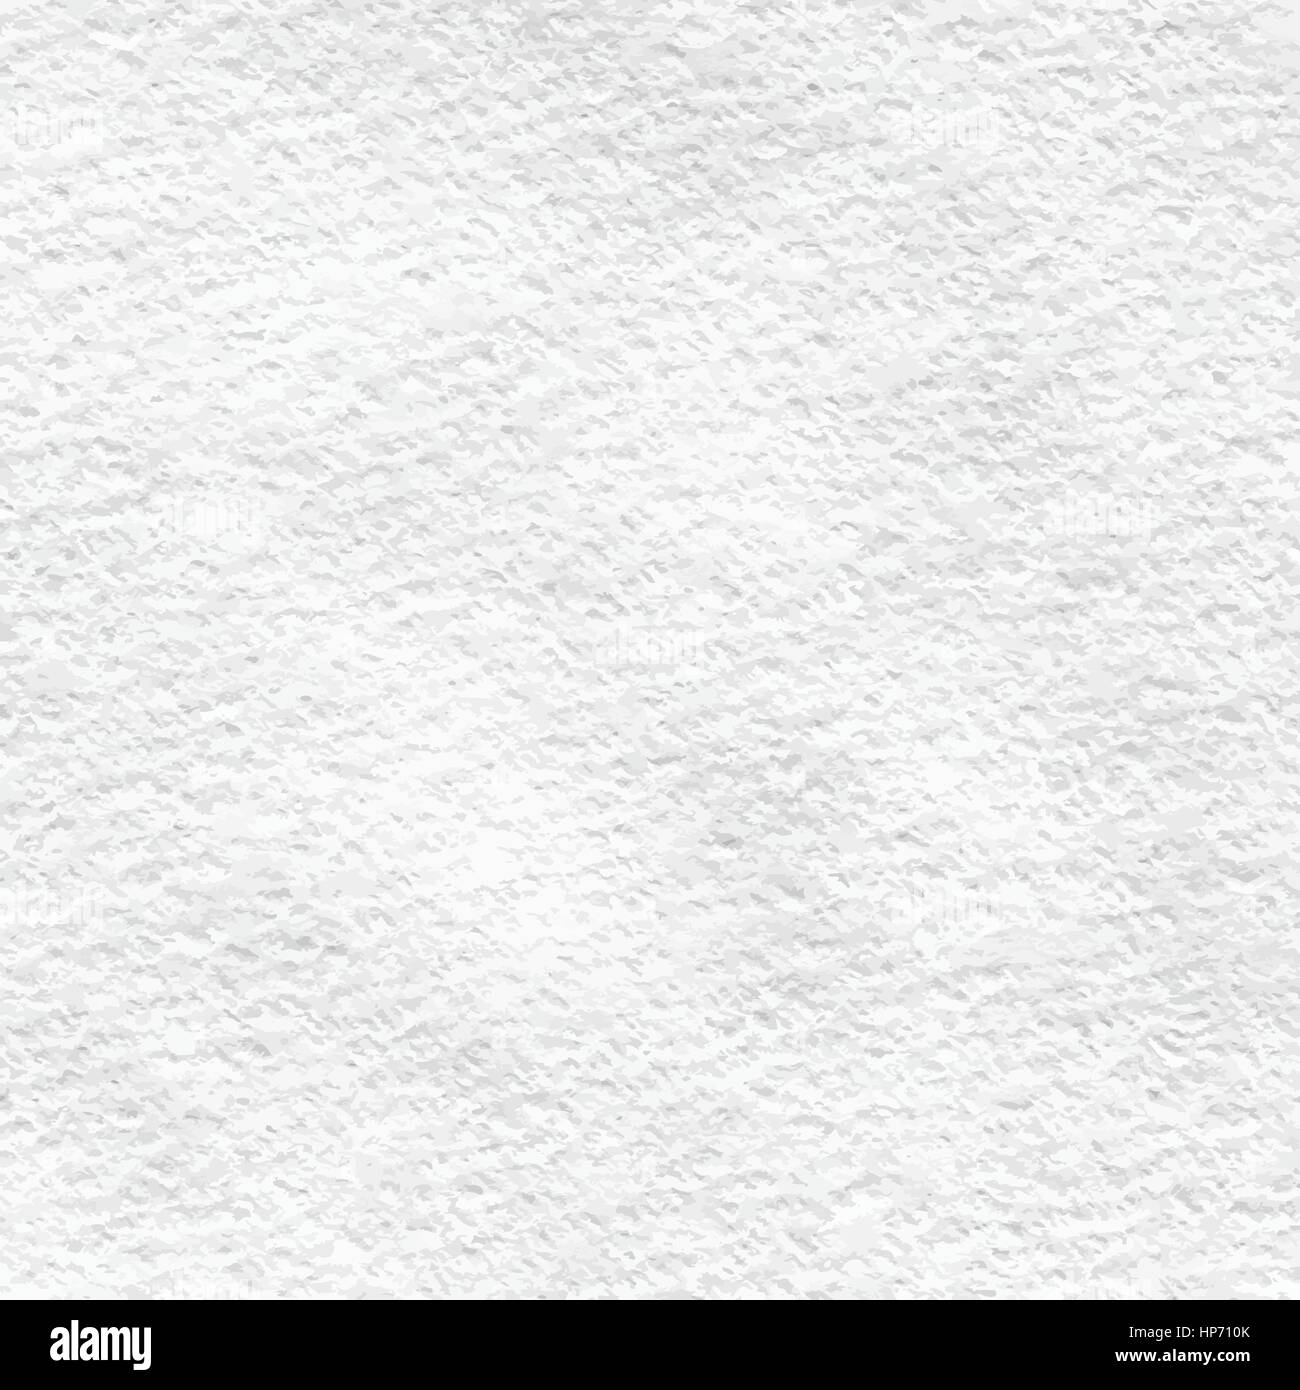 Vector High-Resolution Blank White Watercolor Paper Texture - Stock Image